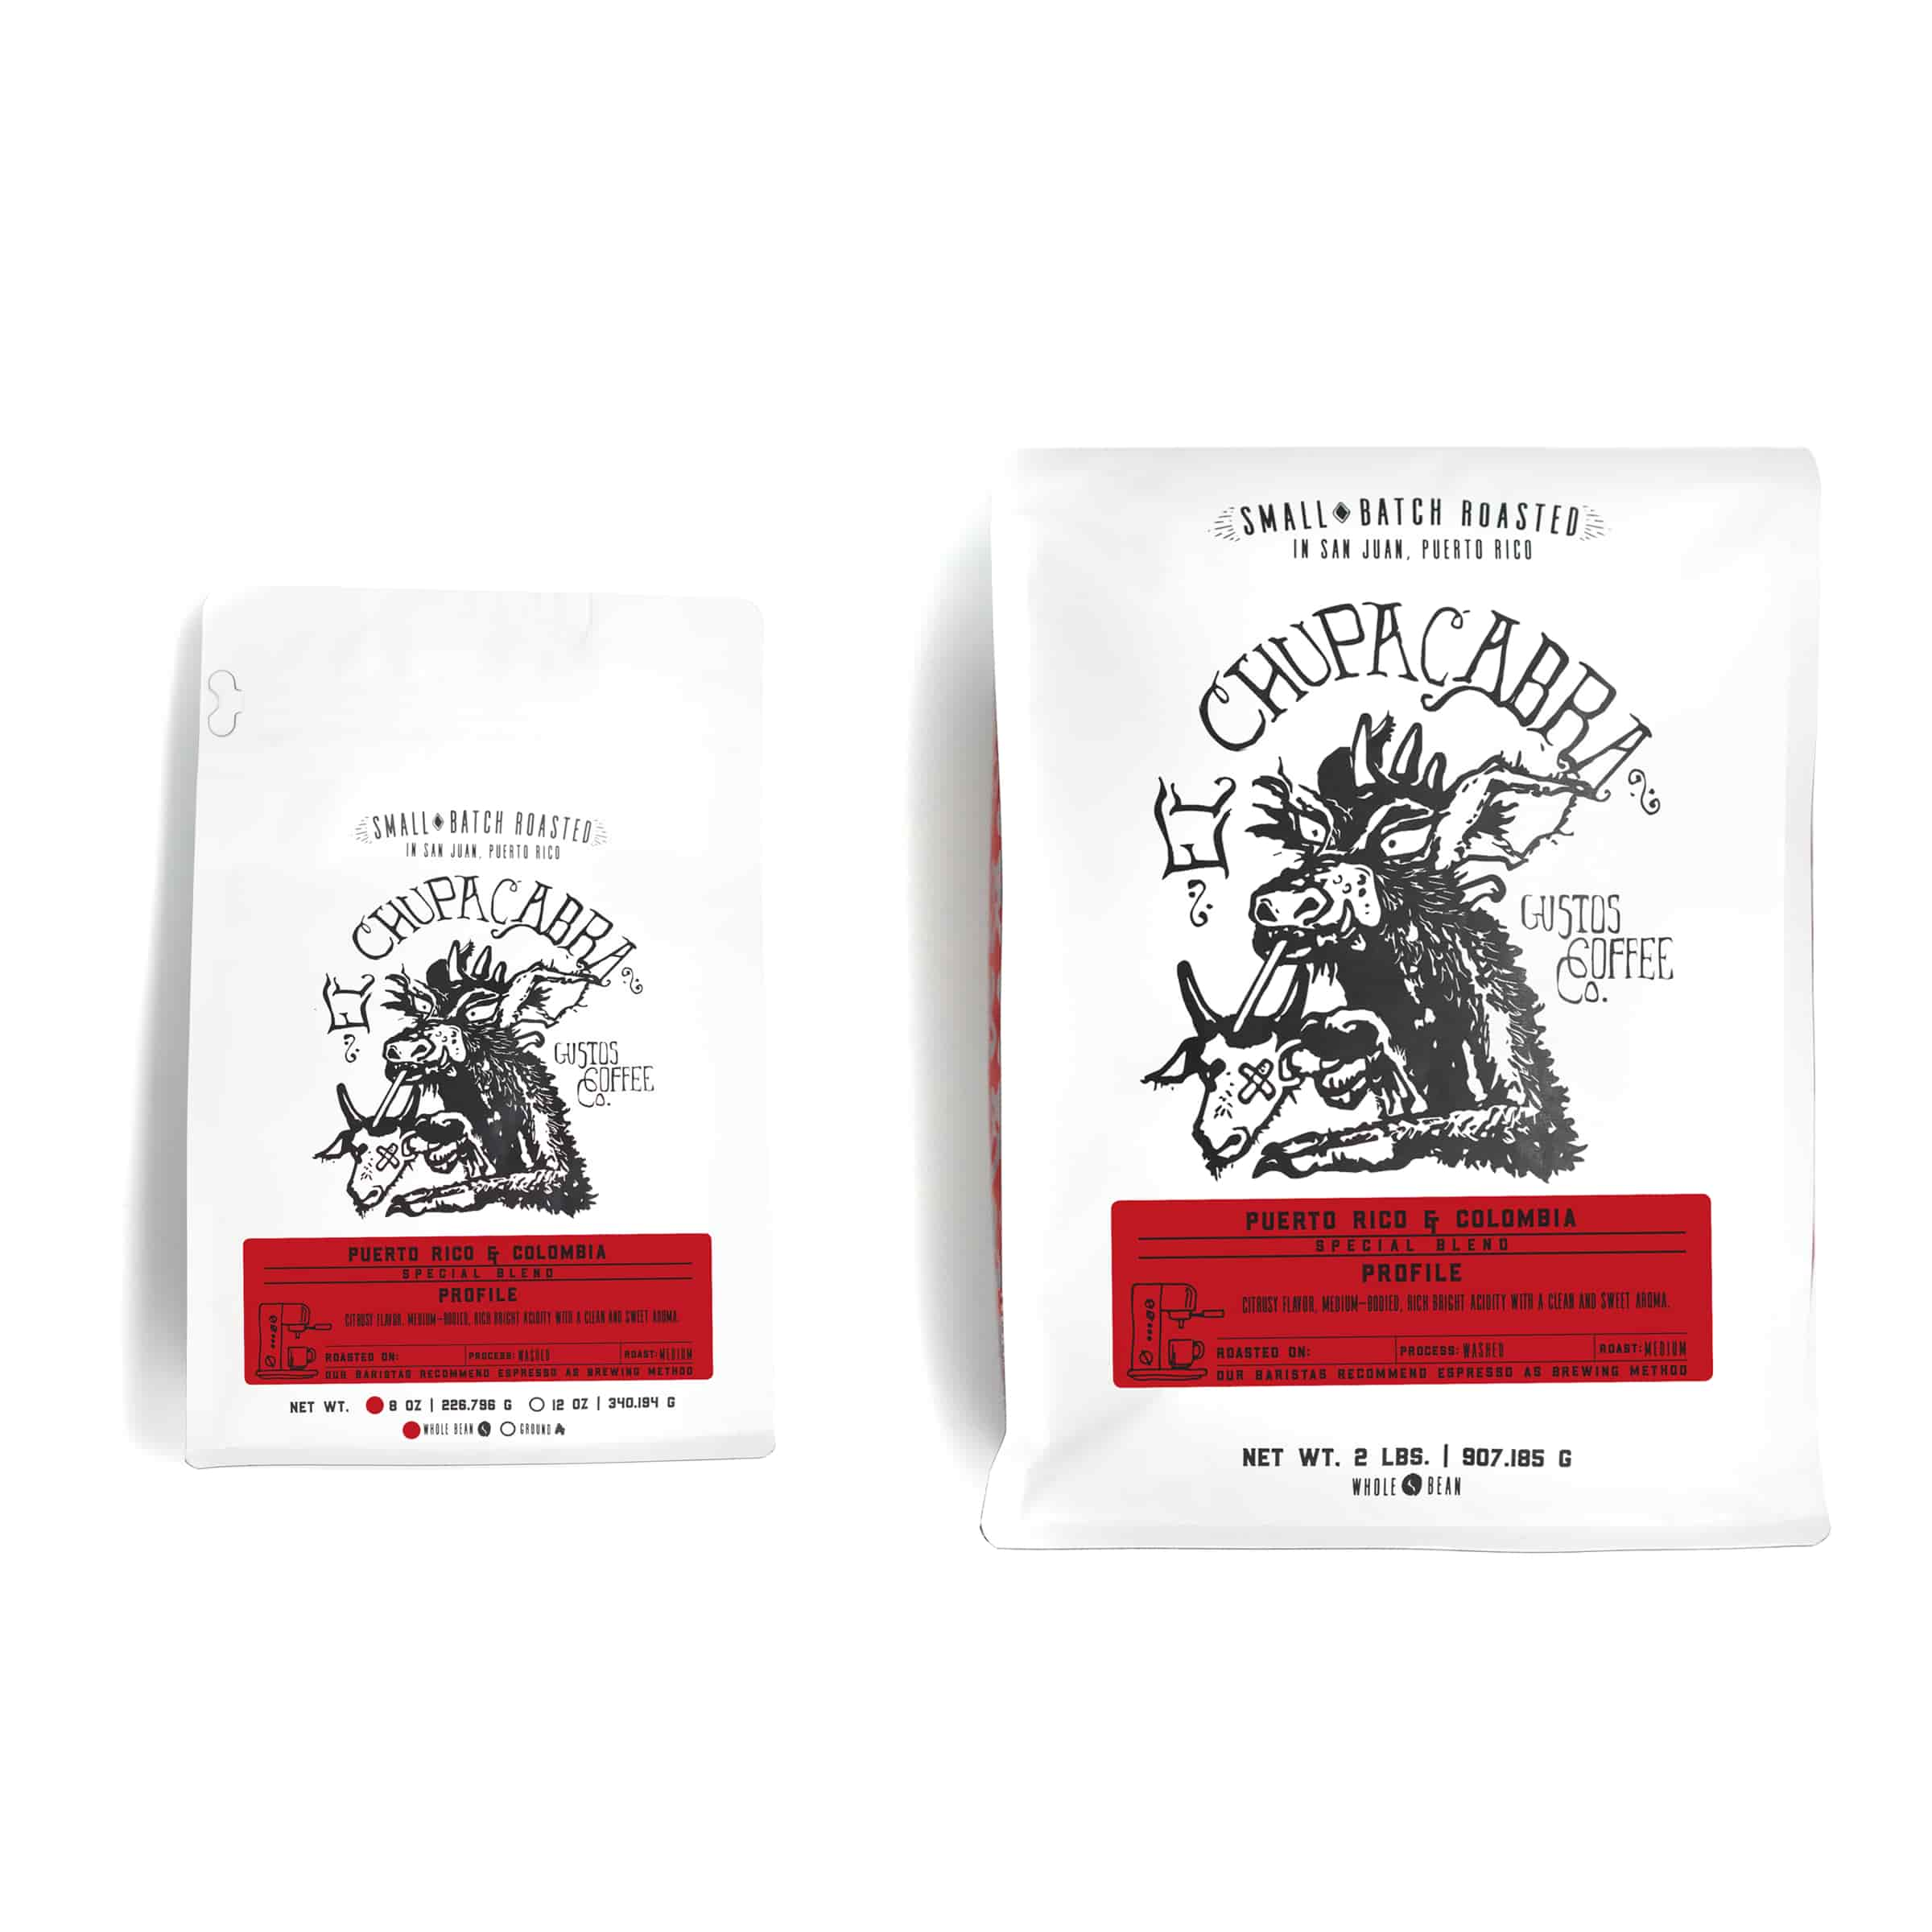 Two special coffee blends side by side over a white background. El Chupacabra PR x Colombia Specialty coffee from Gustos Coffee co